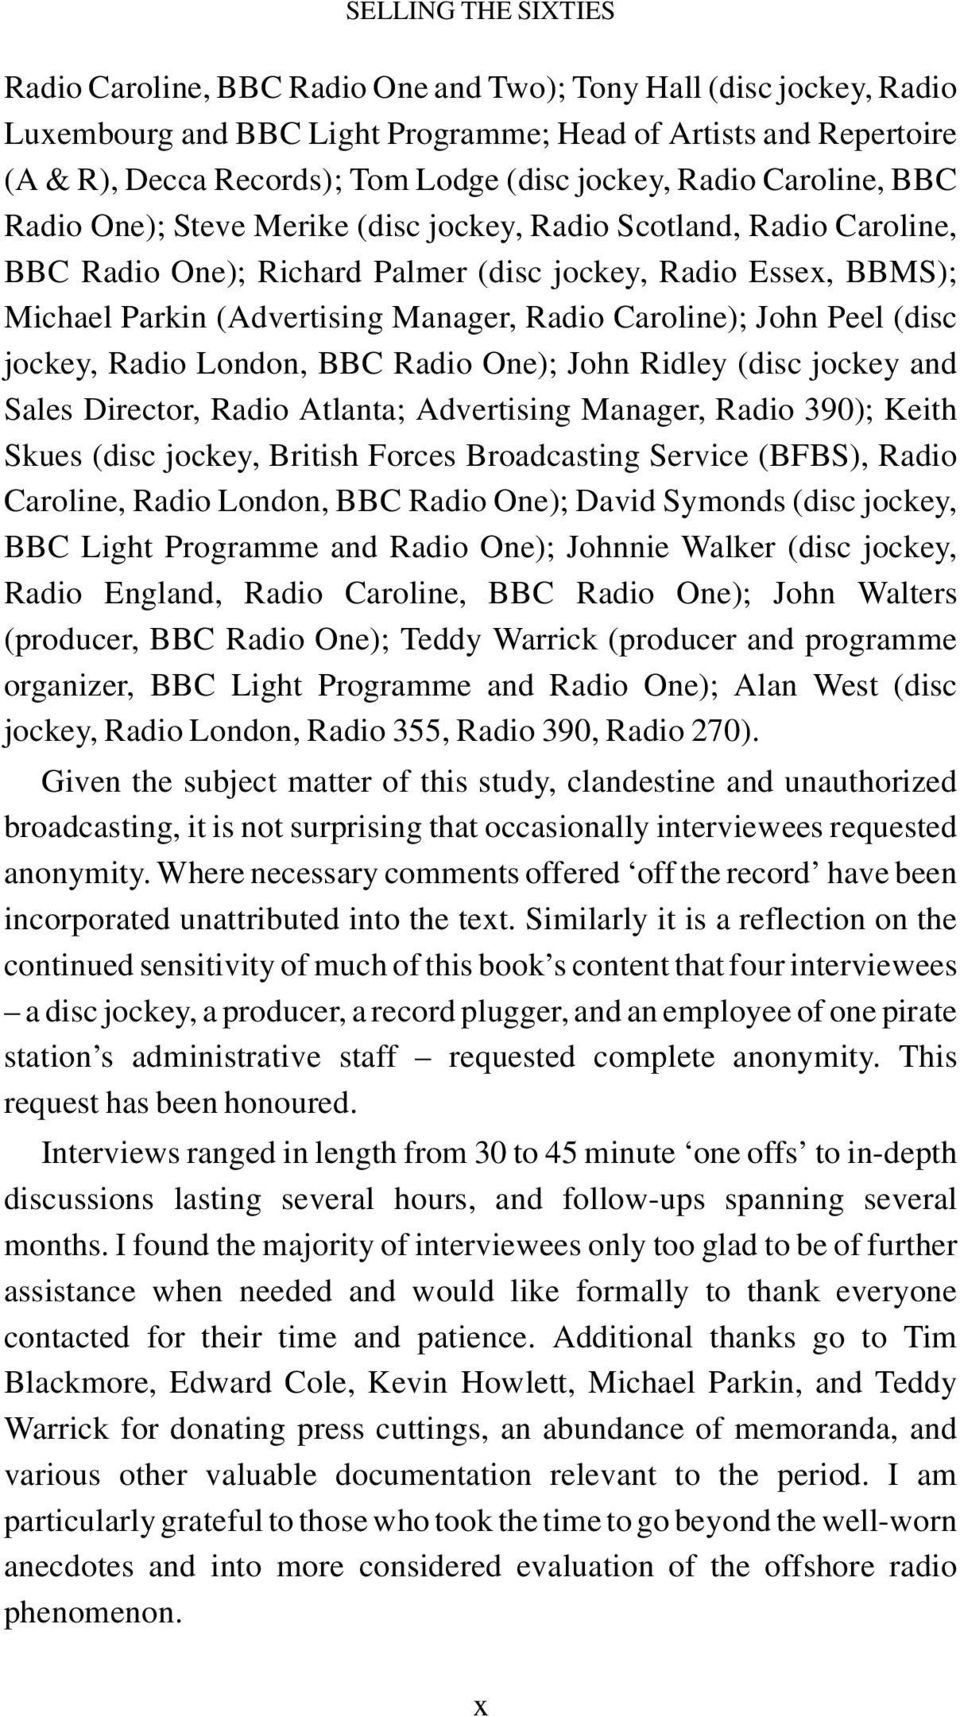 Manager, Radio Caroline); John Peel (disc jockey, Radio London, BBC Radio One); John Ridley (disc jockey and Sales Director, Radio Atlanta; Advertising Manager, Radio 390); Keith Skues (disc jockey,